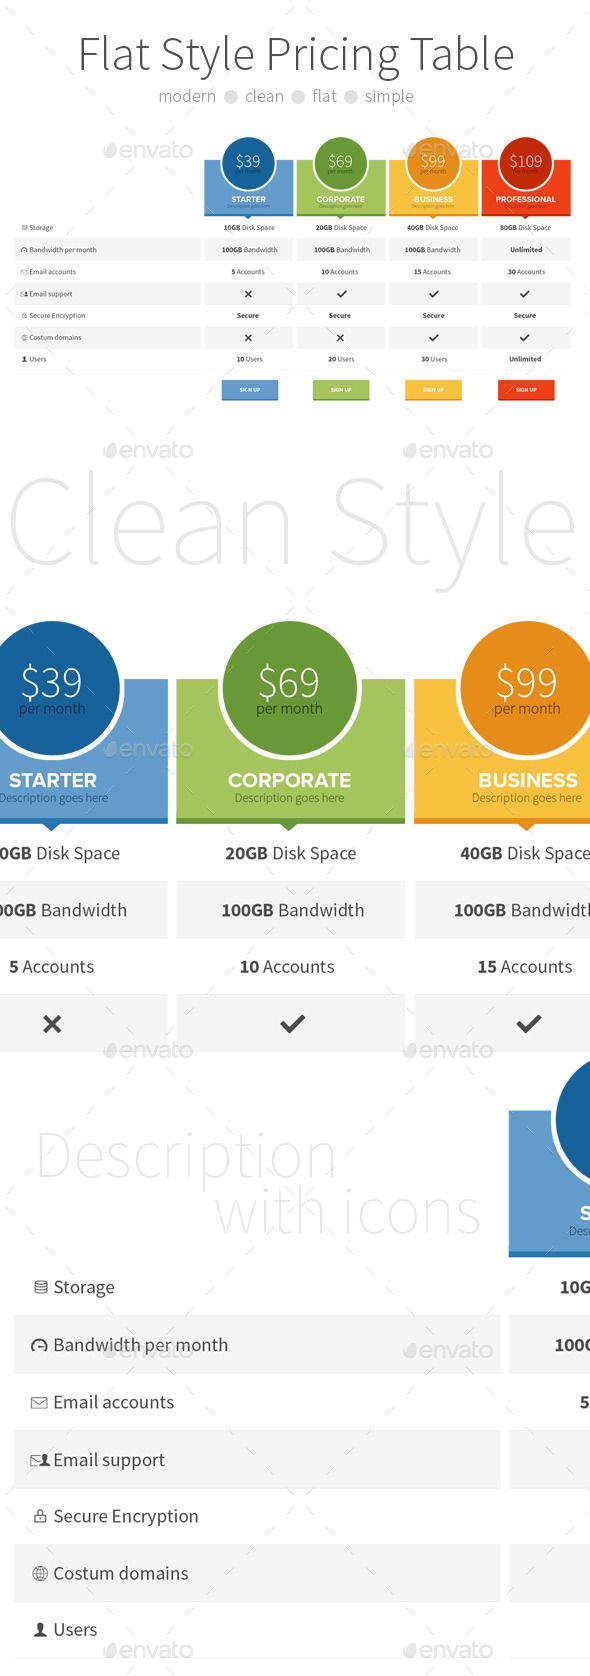 Flat Style Pricing Table Template PSD. Download here: http://graphicriver.net/item/flat-style-pricing-table/9105585?ref=ksioks